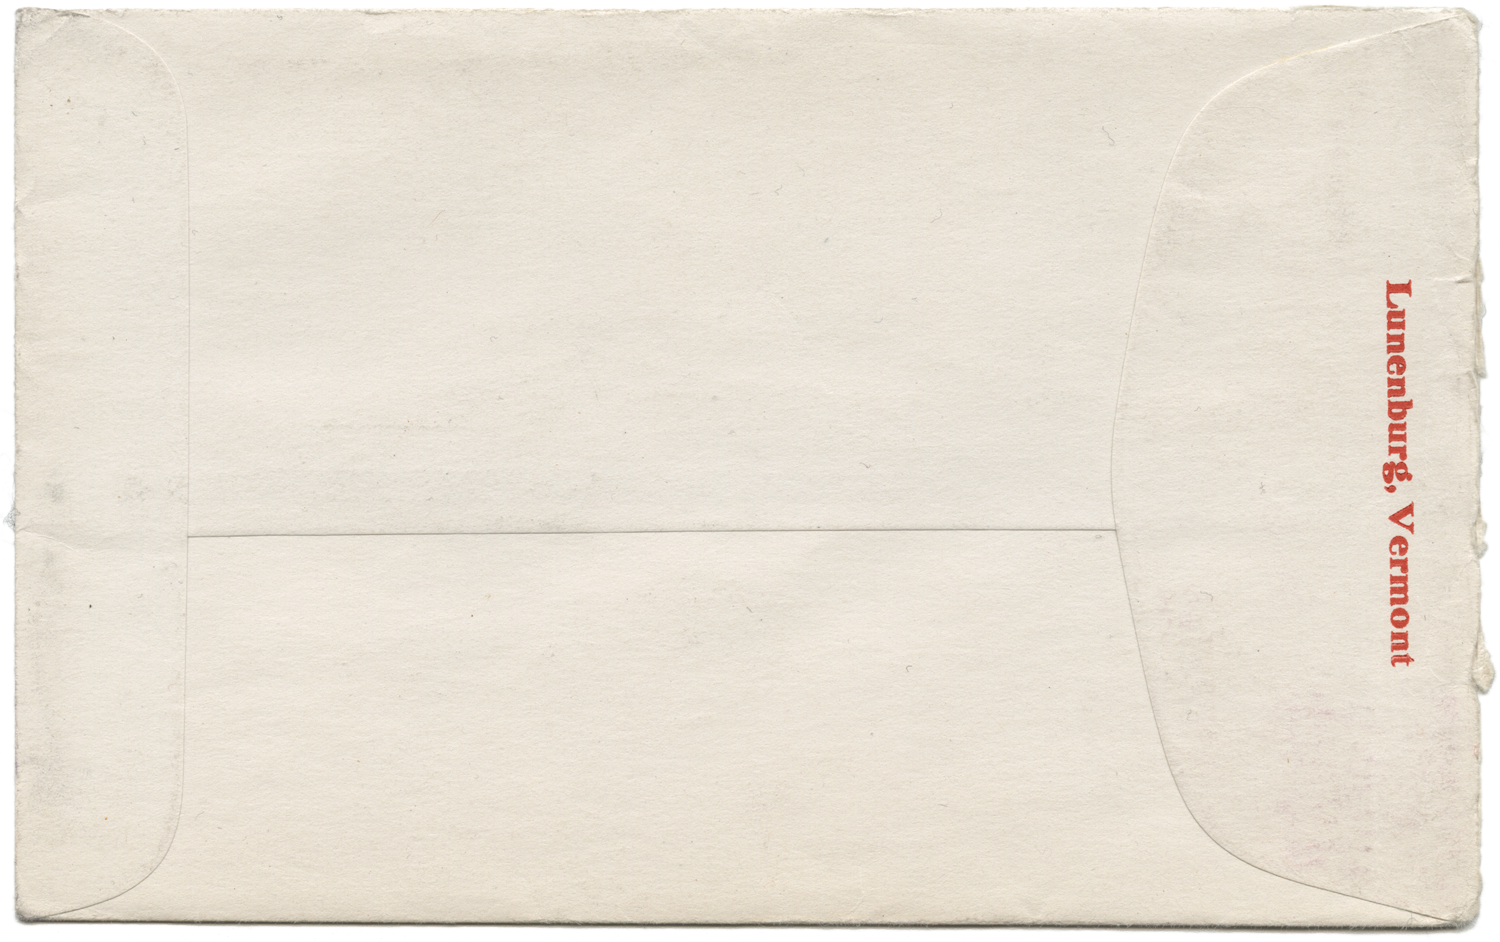 Stinehour_Christmas_envelope.png